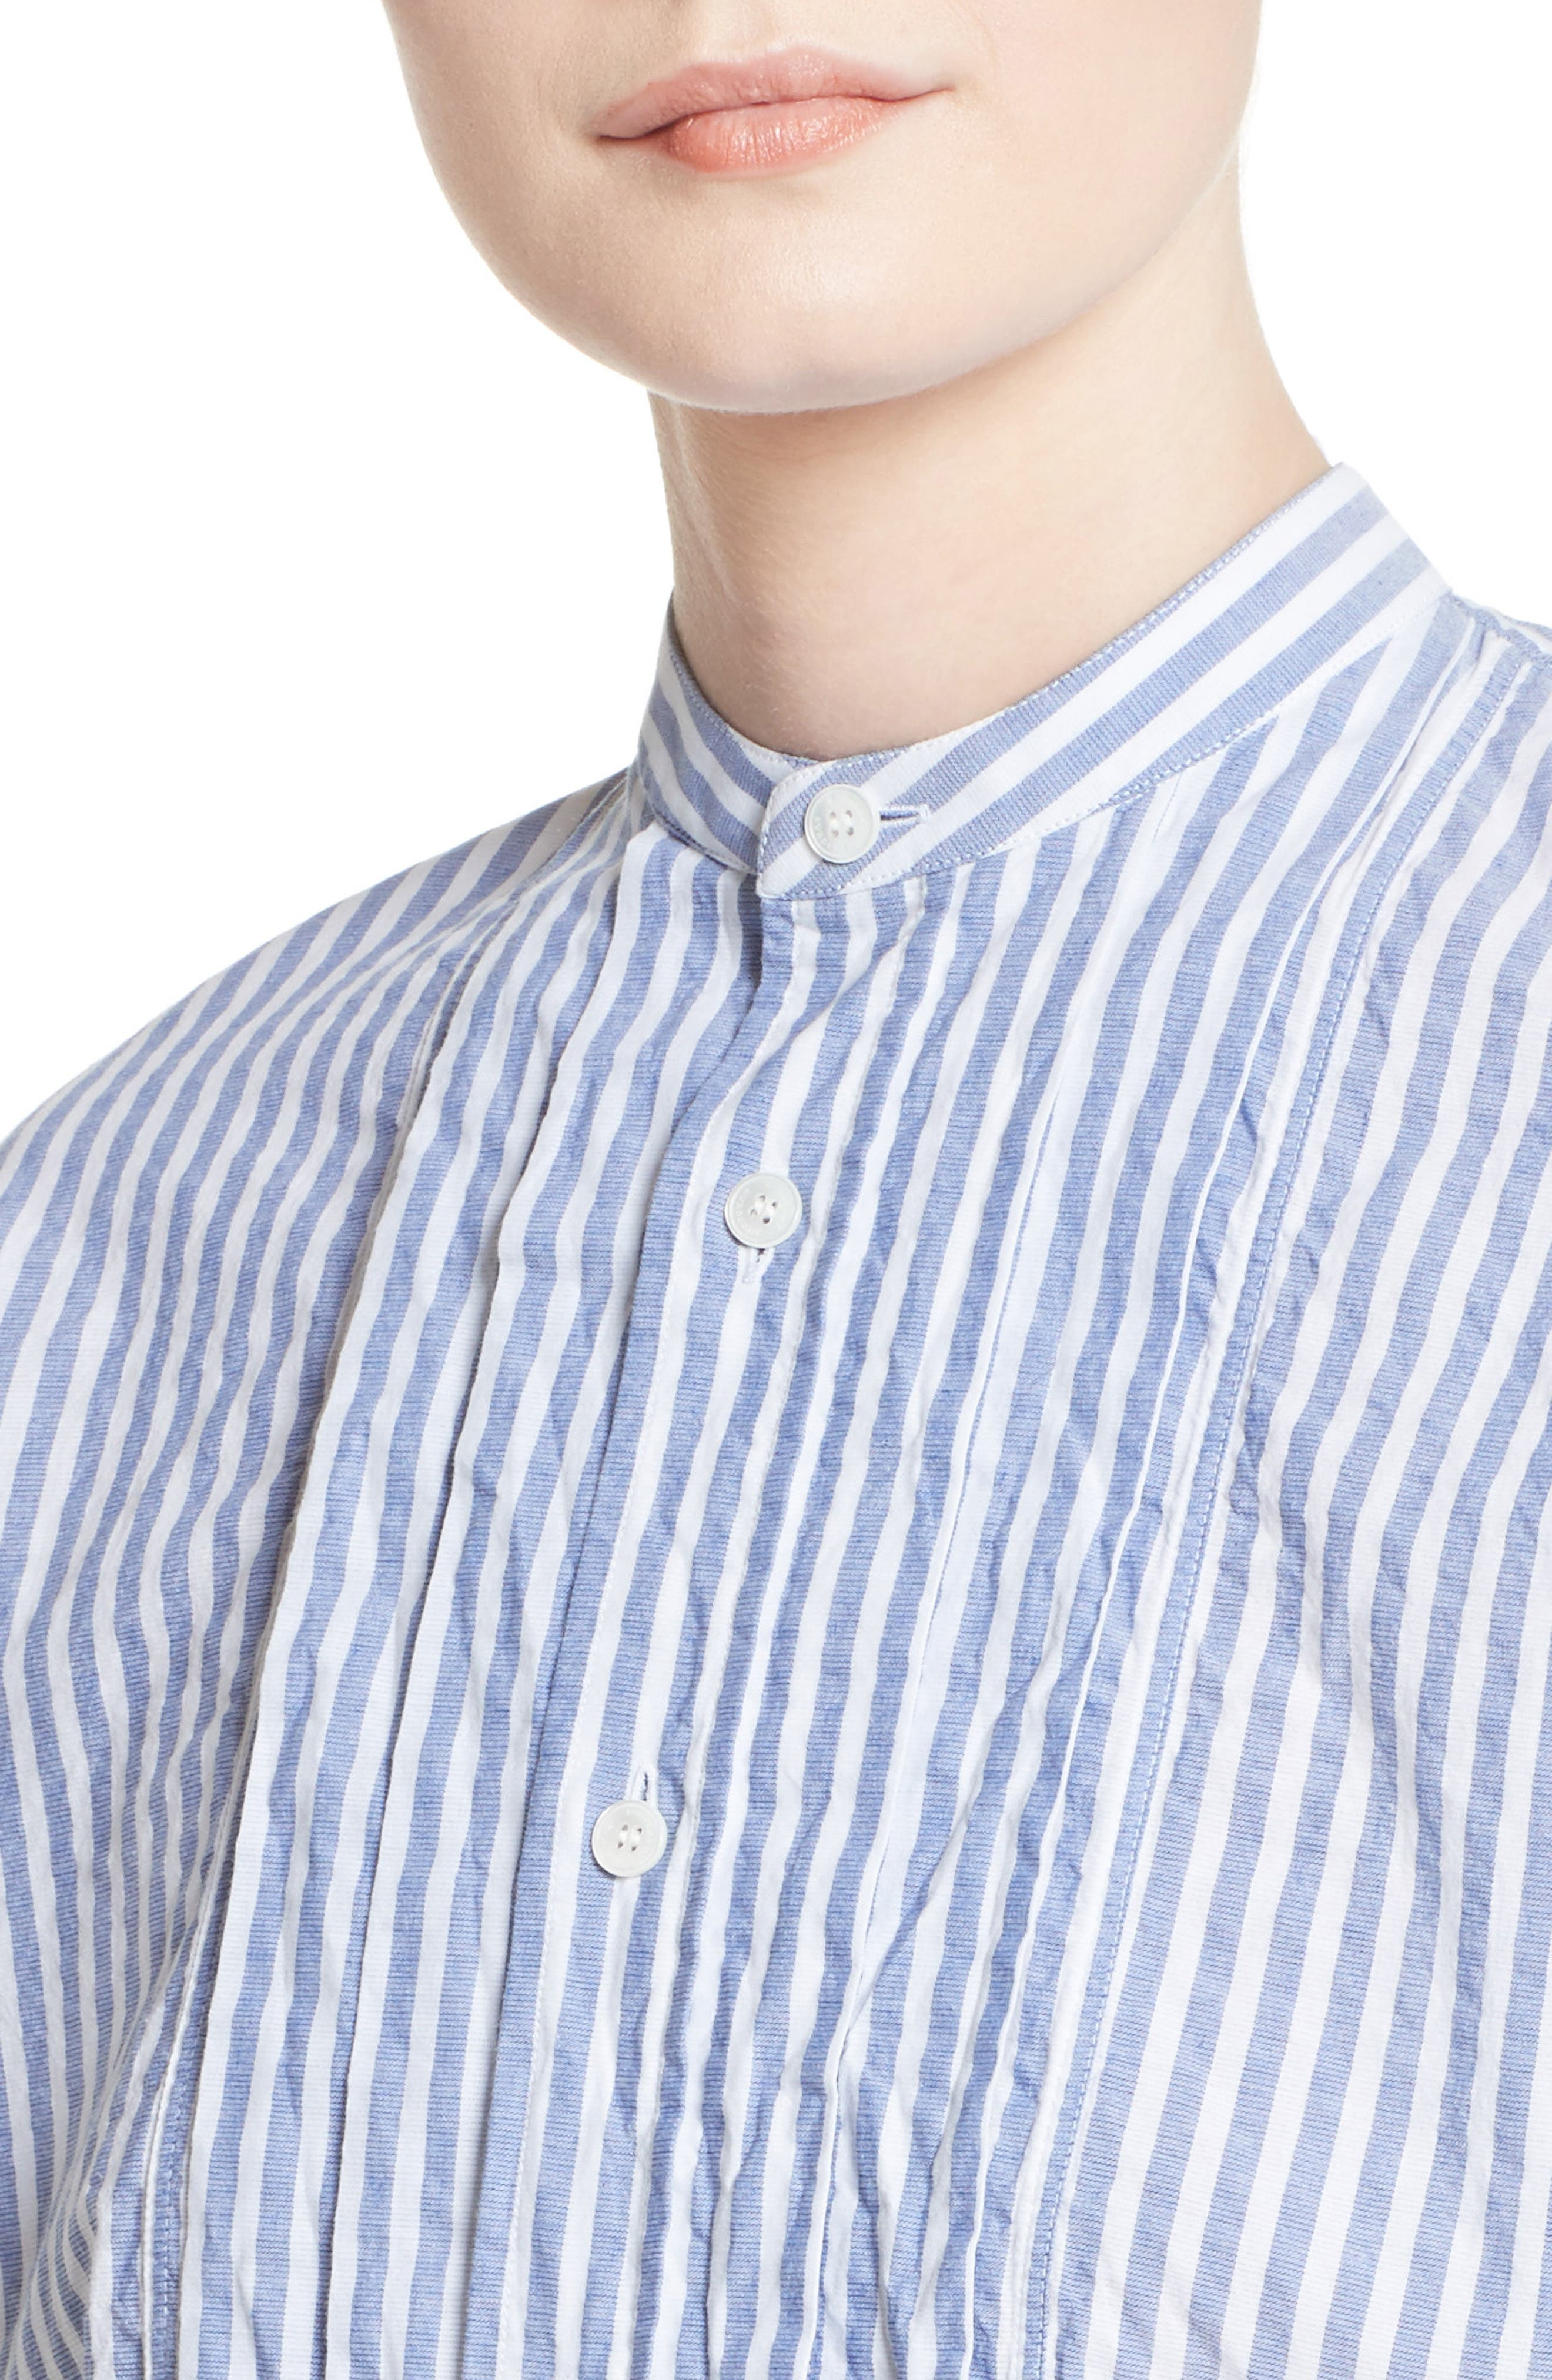 Benfleet Stripe Cotton Top,                             Alternate thumbnail 4, color,                             456